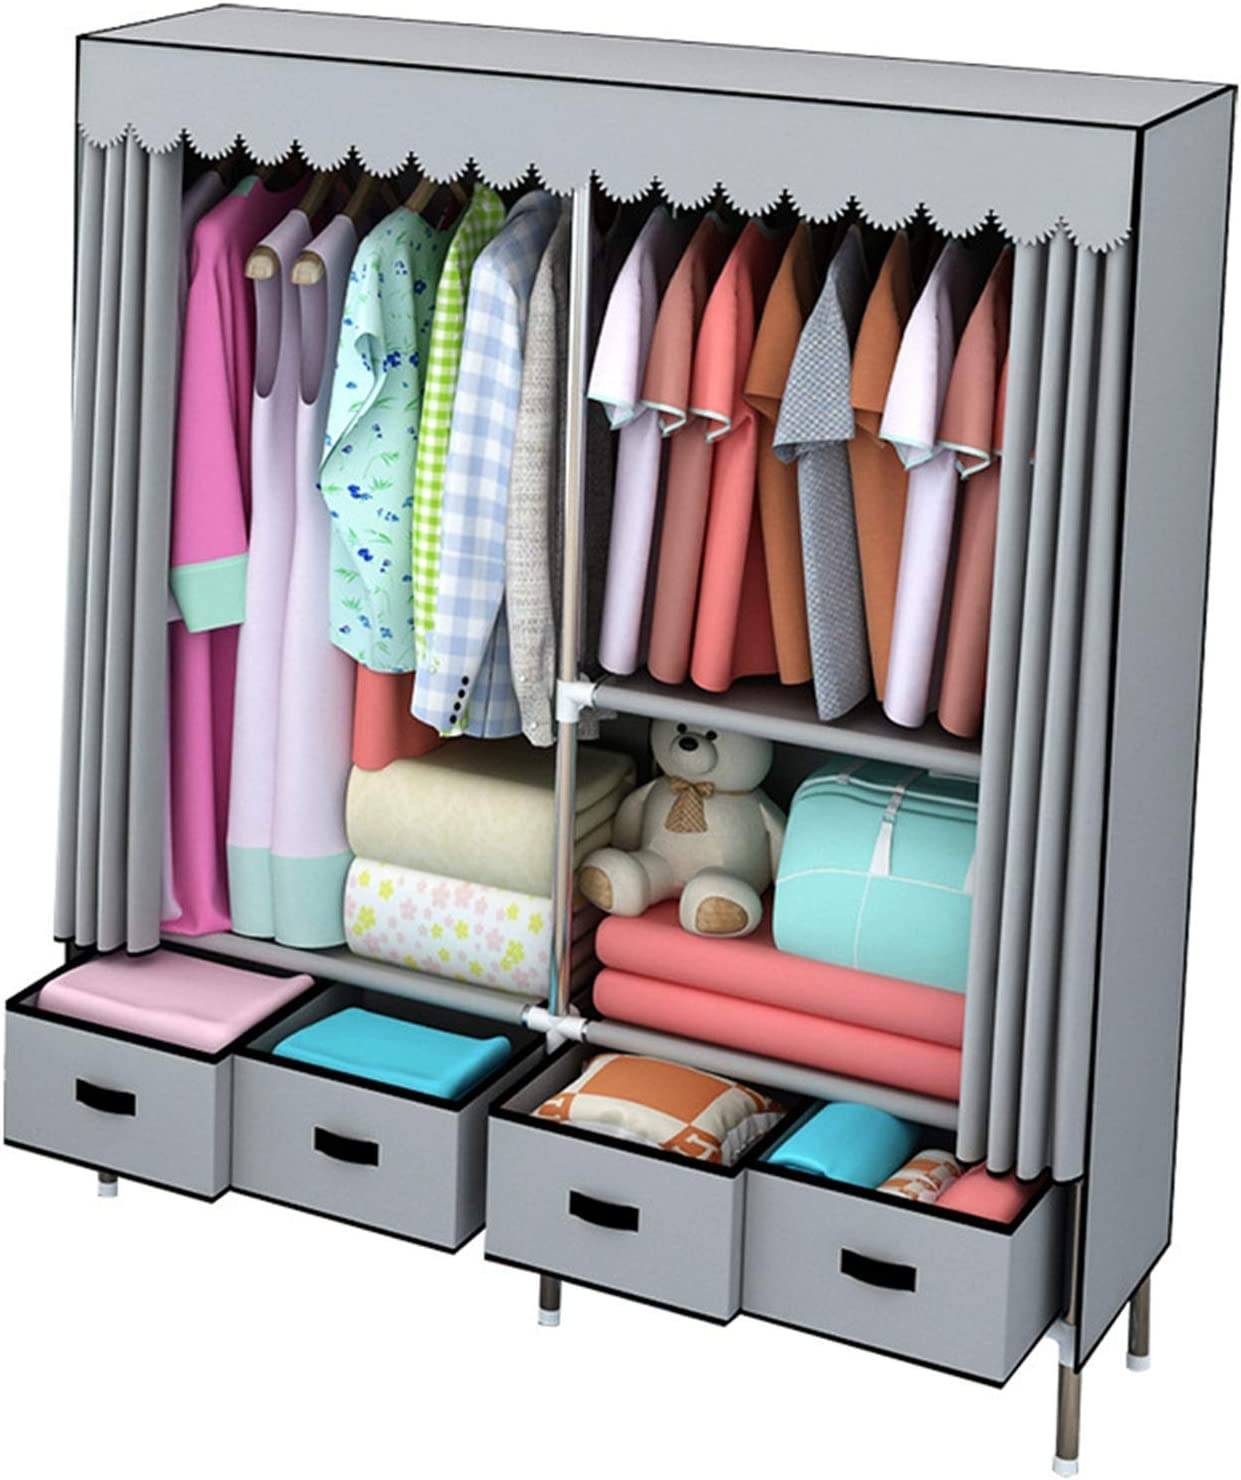 N/Z Home Equipment Canvas Wardrobe Portable Clothes Closet Wardrobe with Hanging Rack Non-Woven Fabric Storage Organizer with 4 Drawers (Color : Gray Size : 162x45x168cm)